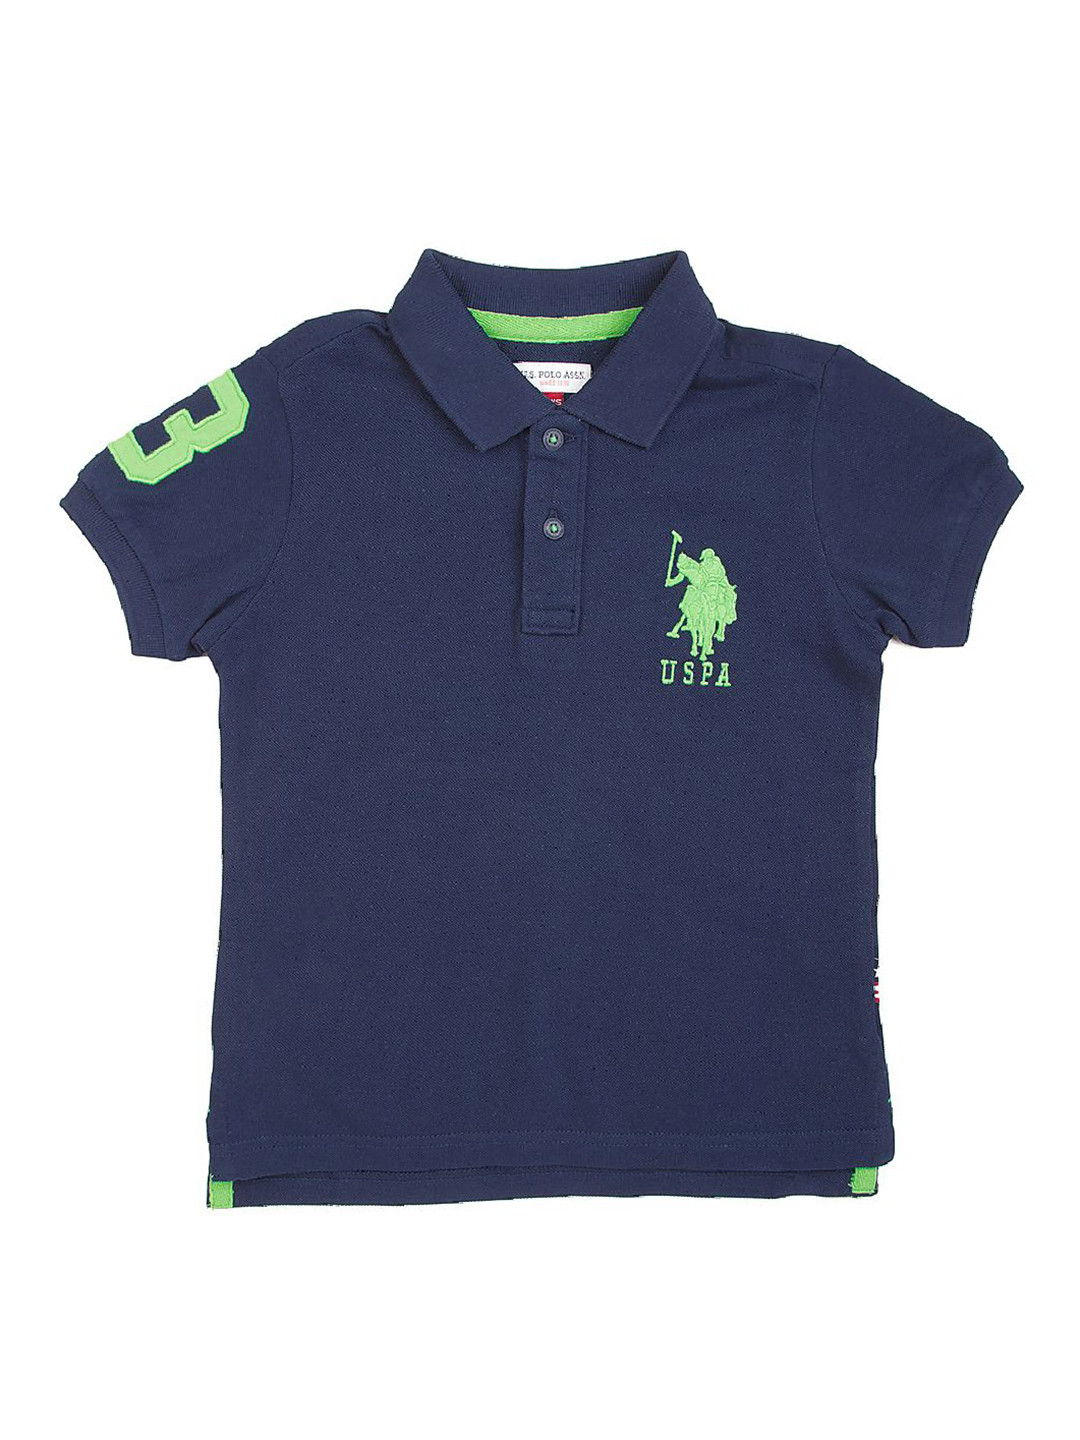 U S Polo navy color cotton t-shirt?imgeng=w_400